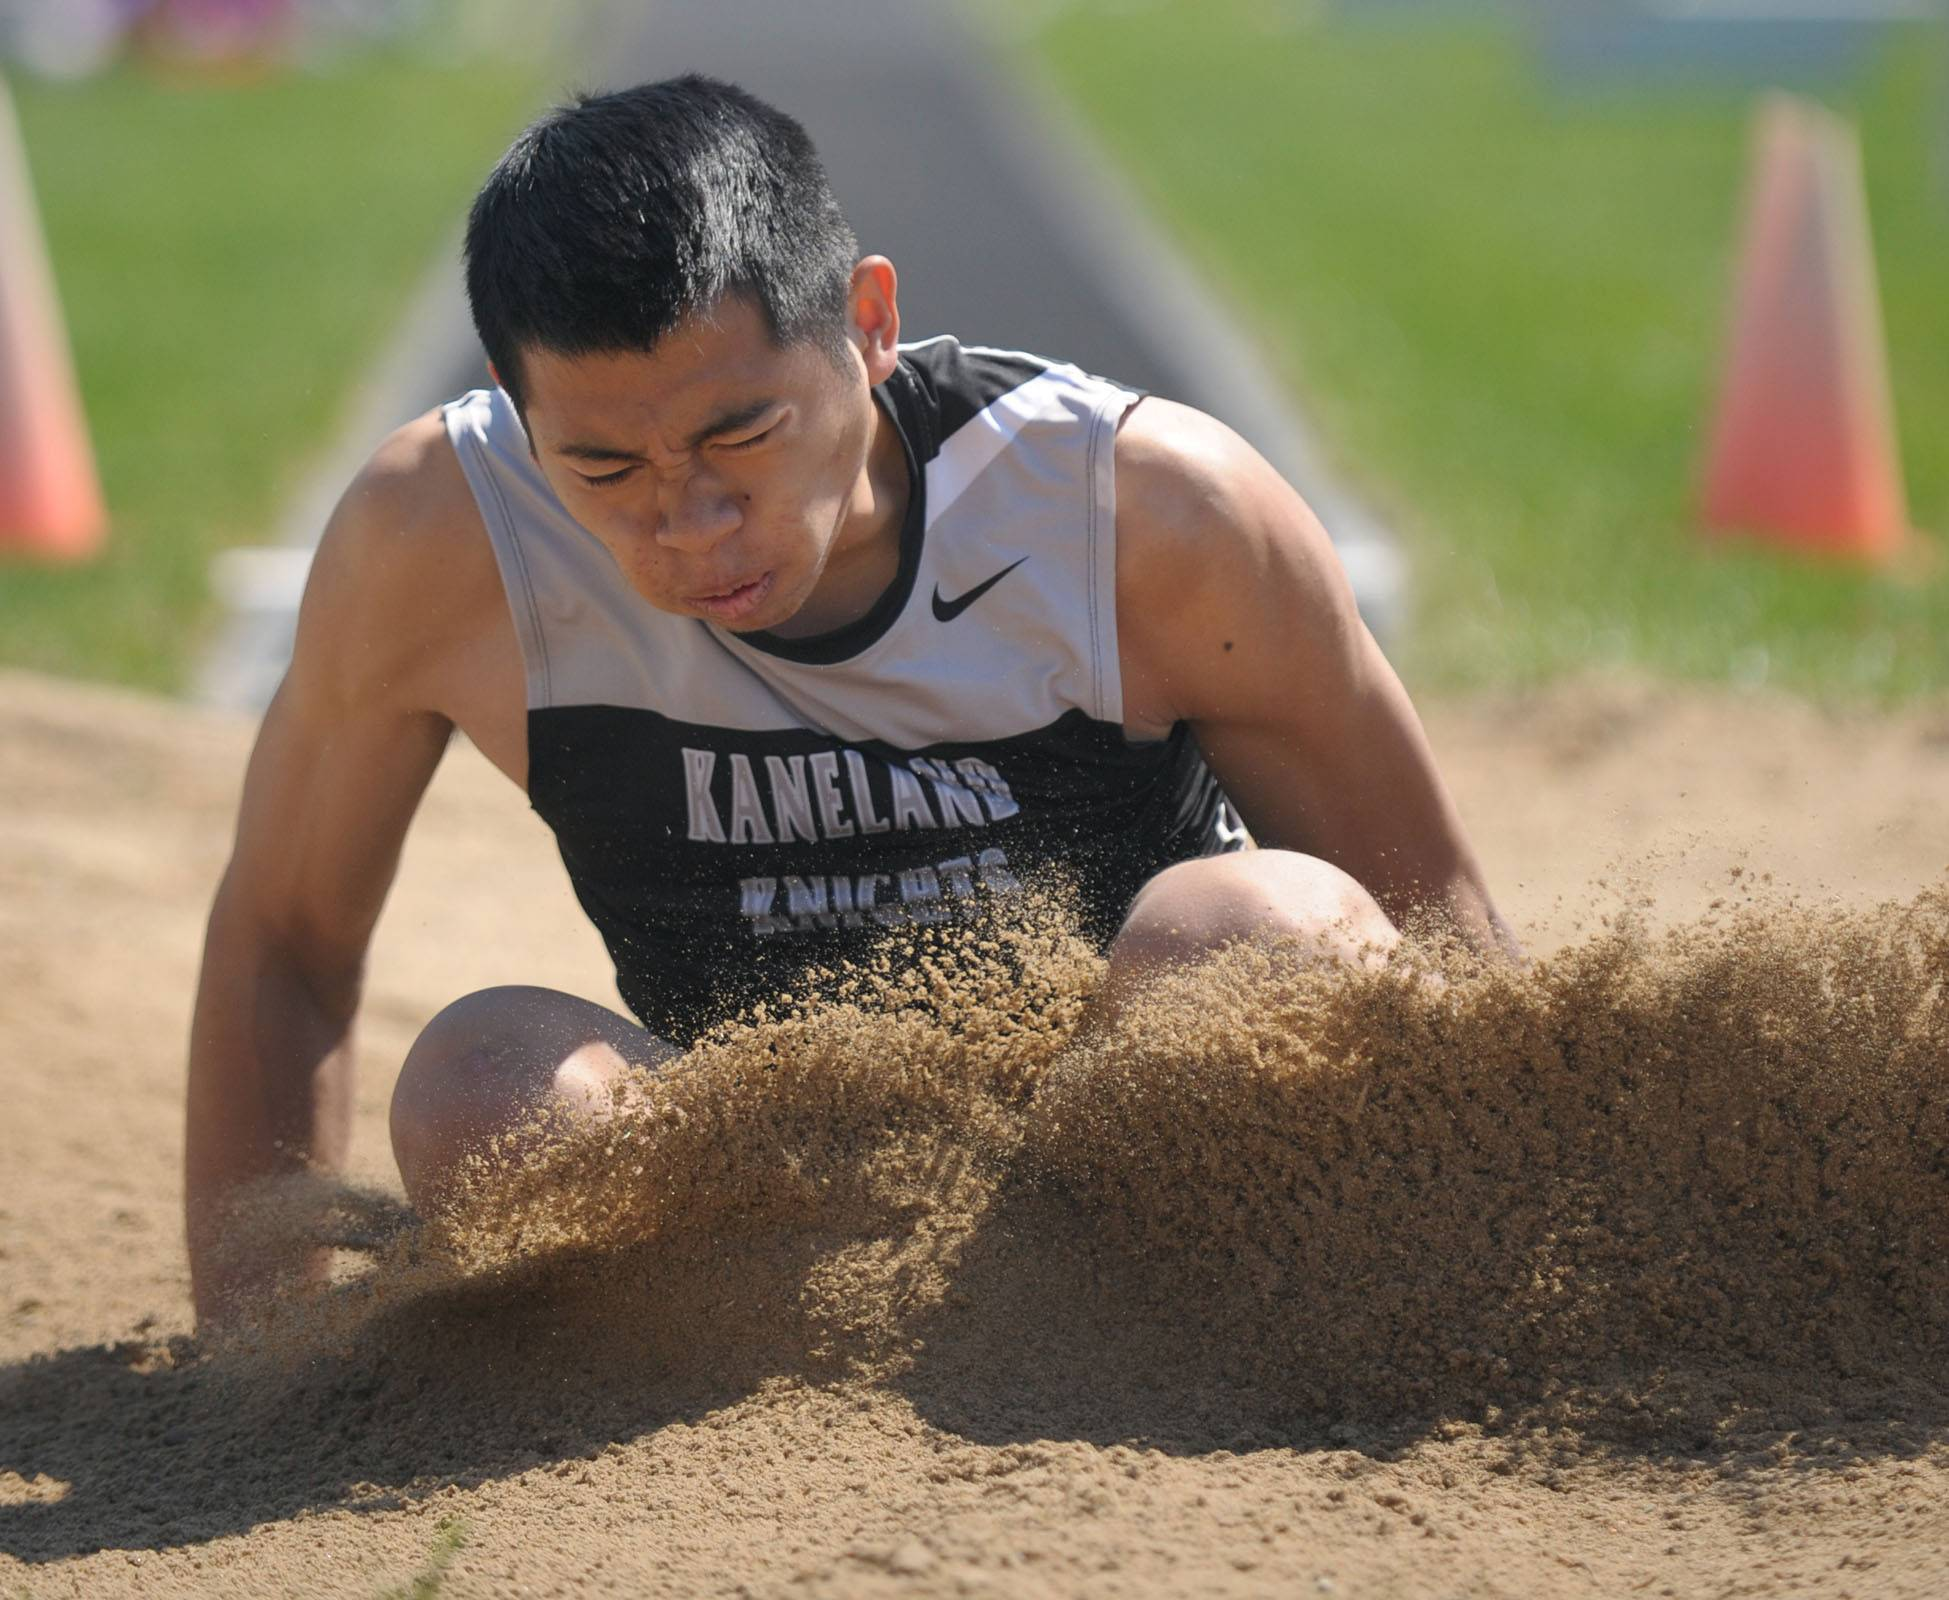 Kaneland's Ben Barnes lands in the long jump finals at Kaneland's Peterson Prep Invitational on Saturday.